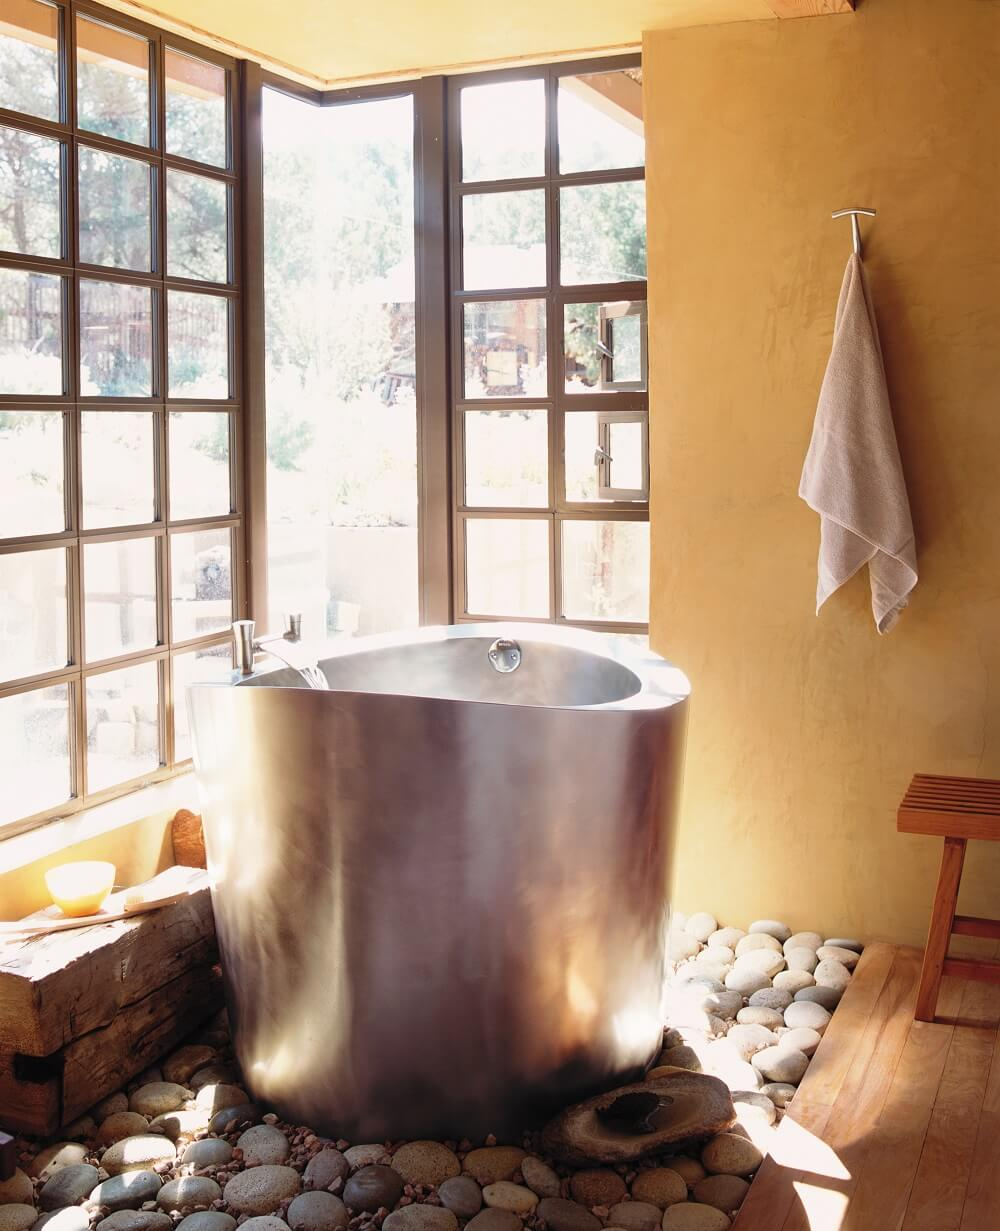 Cool Bathrooms In Japan japanese soaking tubs - japanese baths - outdoor soaking tub